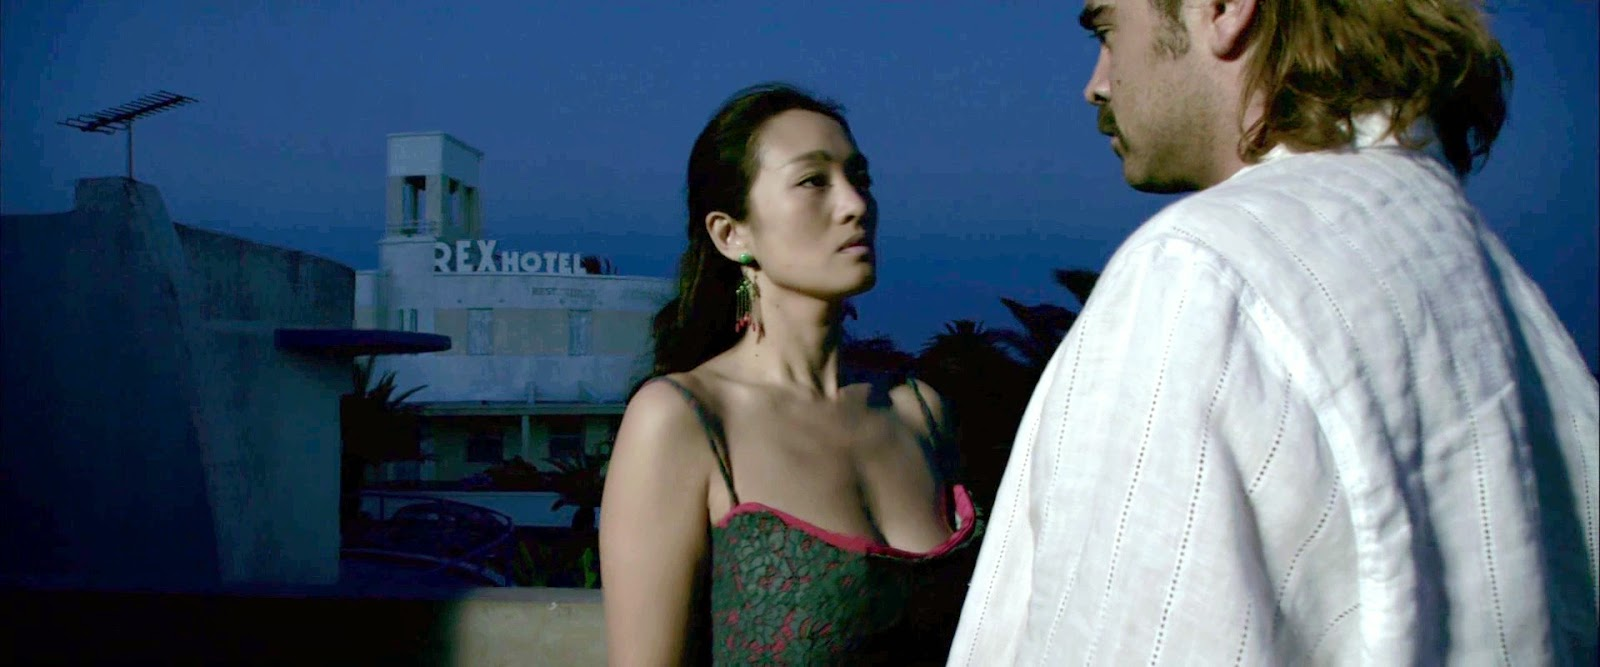 Song gong li sex scene miami vice